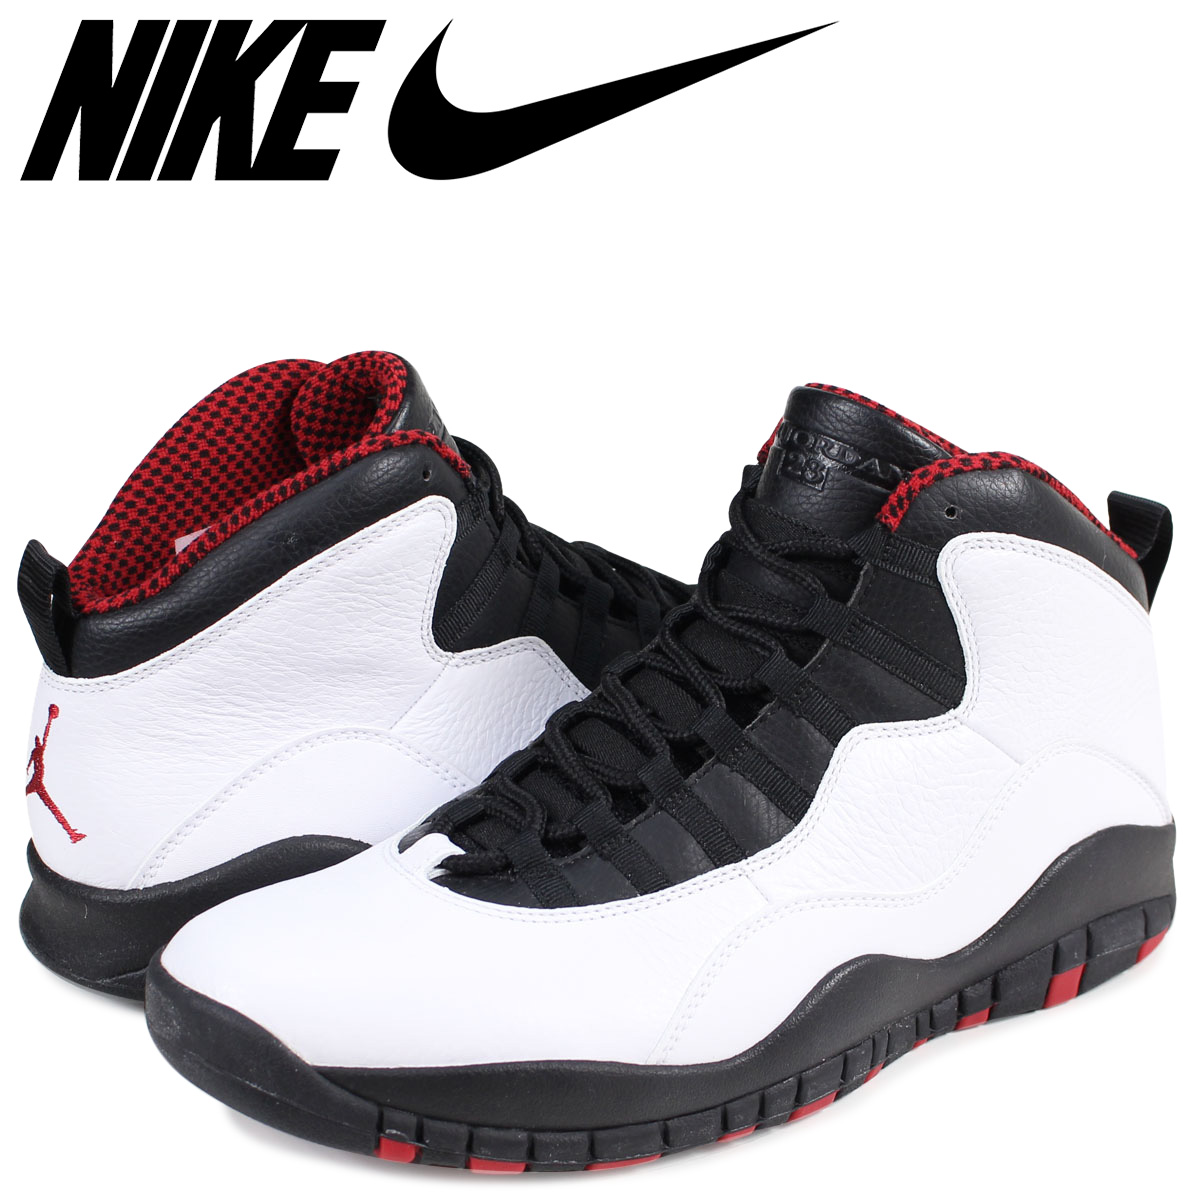 reputable site 51b3c f363a NIKE AIR JORDAN 10 RETRO CHICAGO Nike Air Jordan 10 nostalgic sneakers  310,805-100 men's white